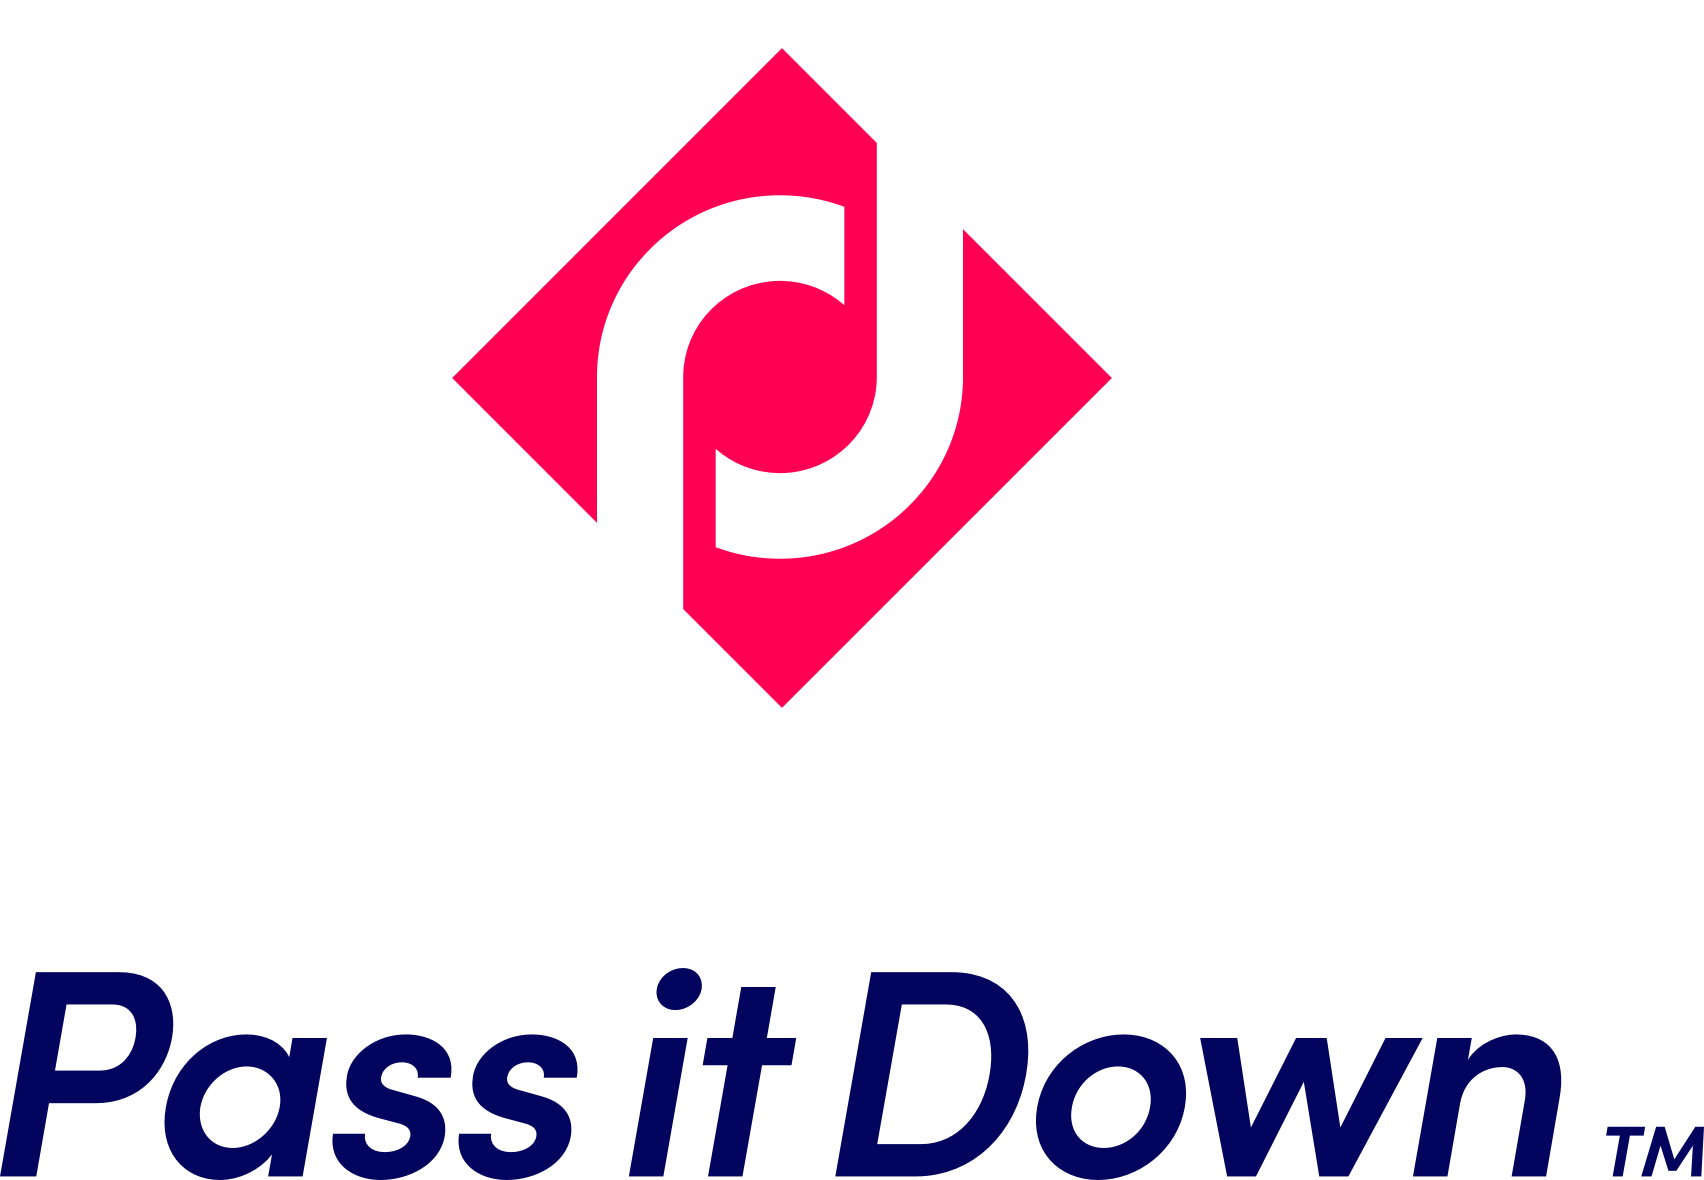 Jamey Fish Chief Growth Officer at Pass It Down